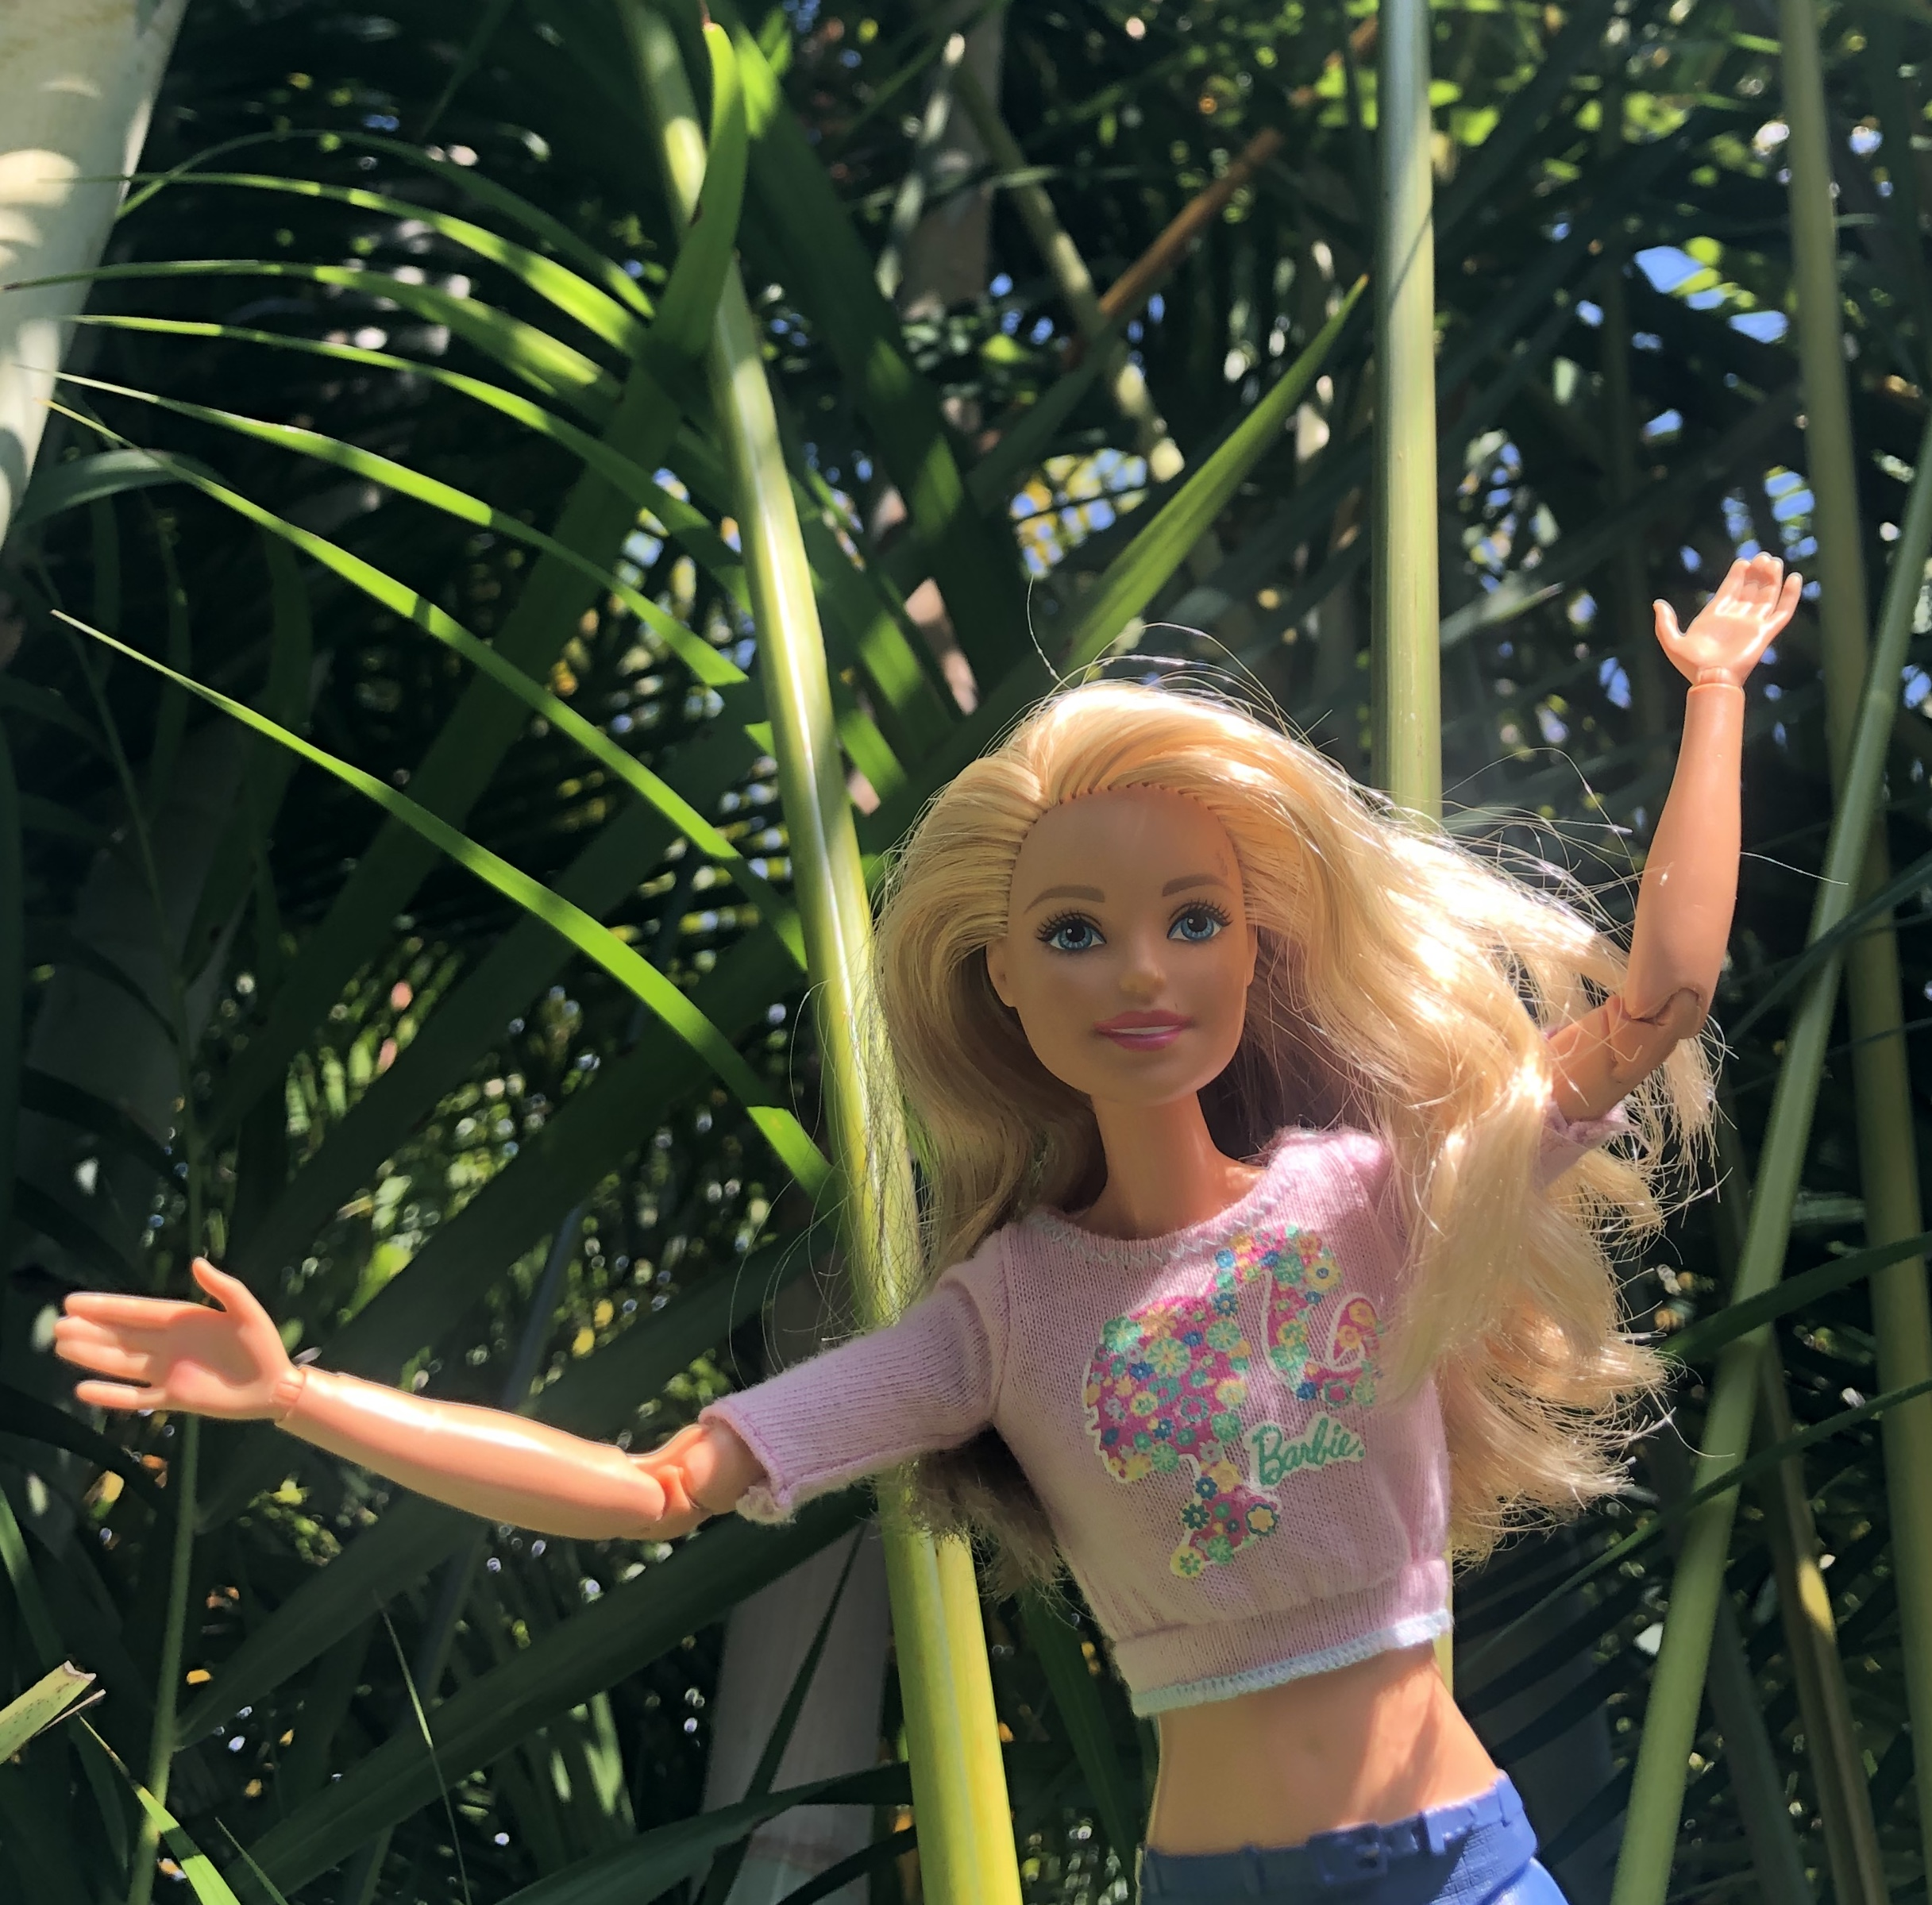 Barbie in a jungle setting for the Barbie Story for kids, Hiking in Costa Rica.